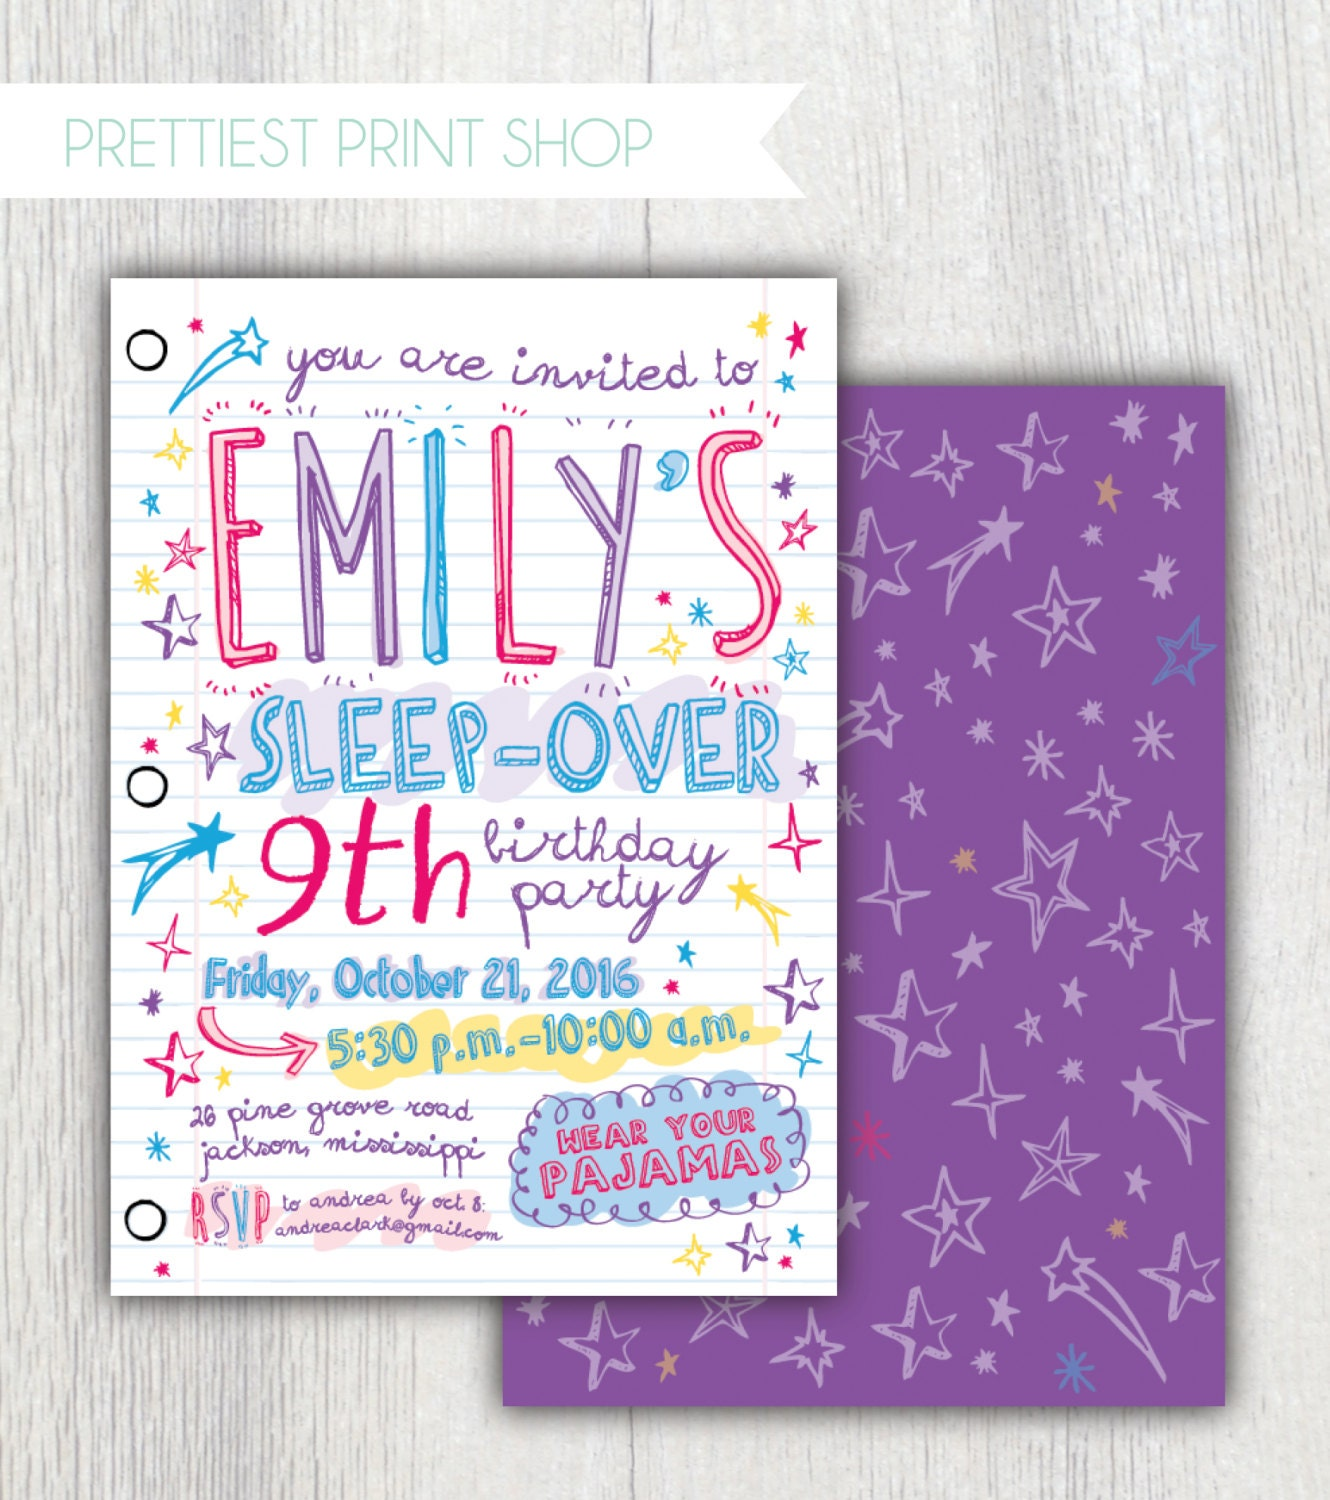 Geeky image for printable invitation paper